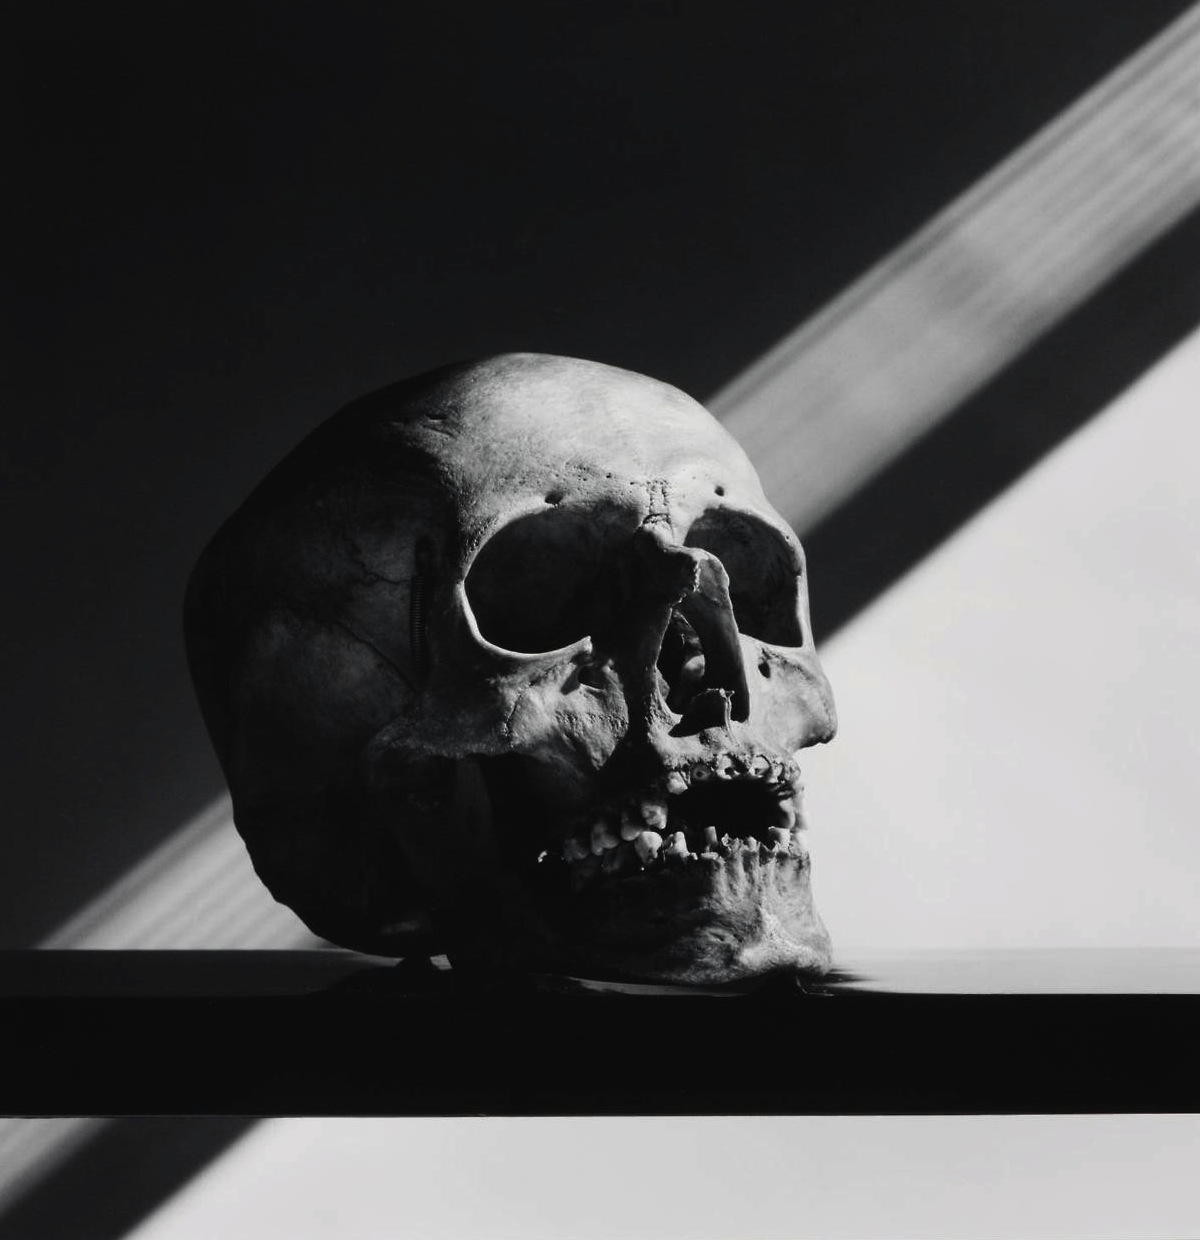 Robert_Mapplethorpe-Skull-1988-hughlippe.jpg